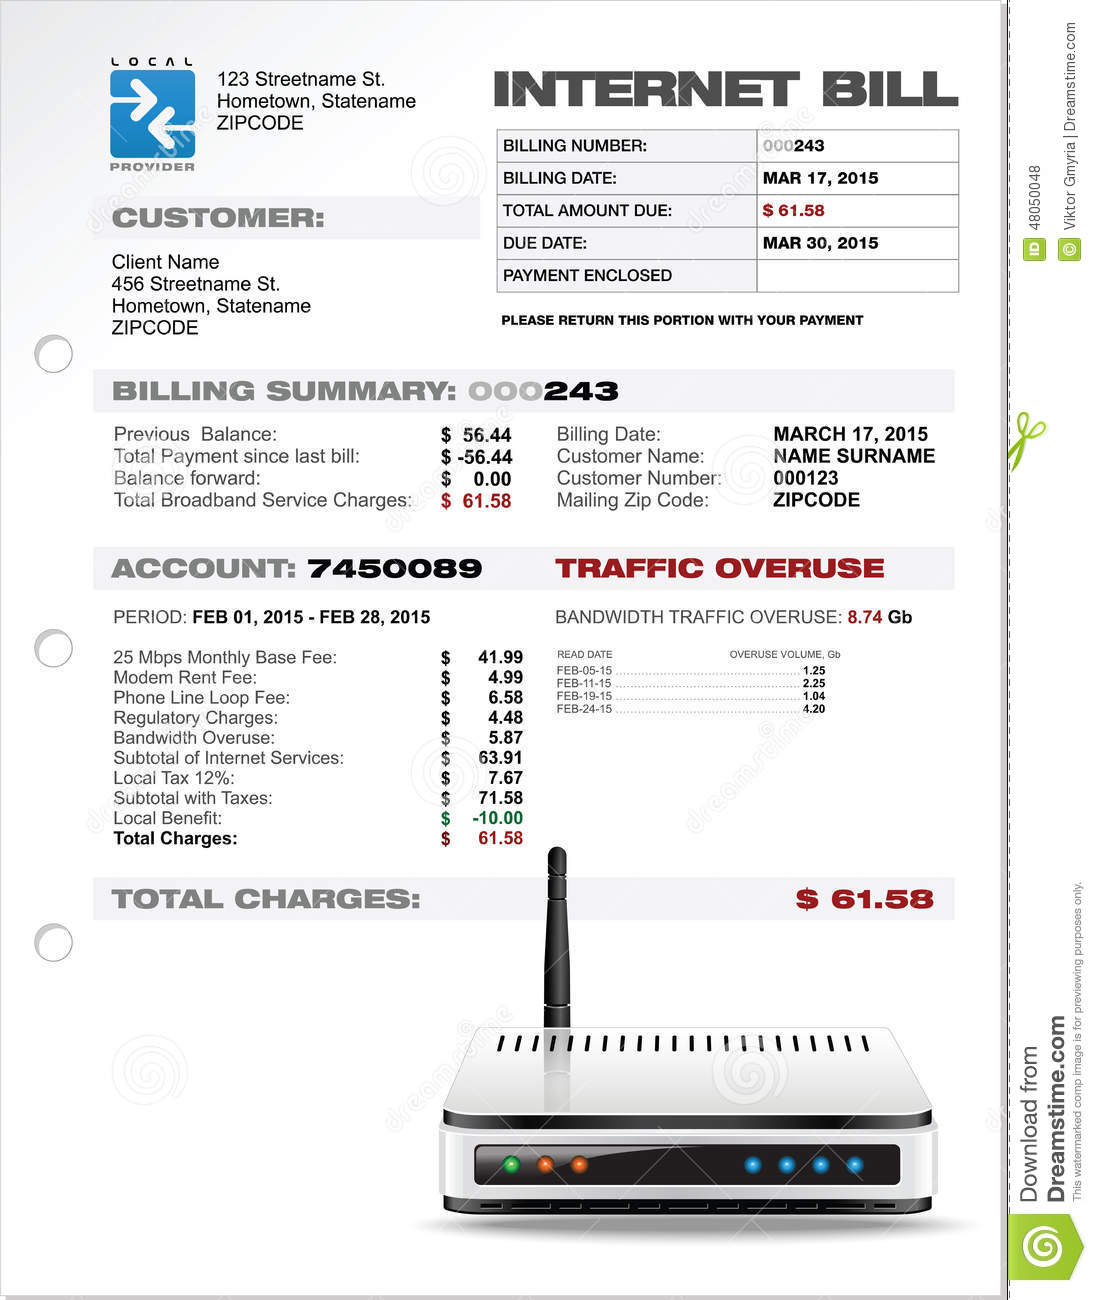 internet isp expenses bill document template with router